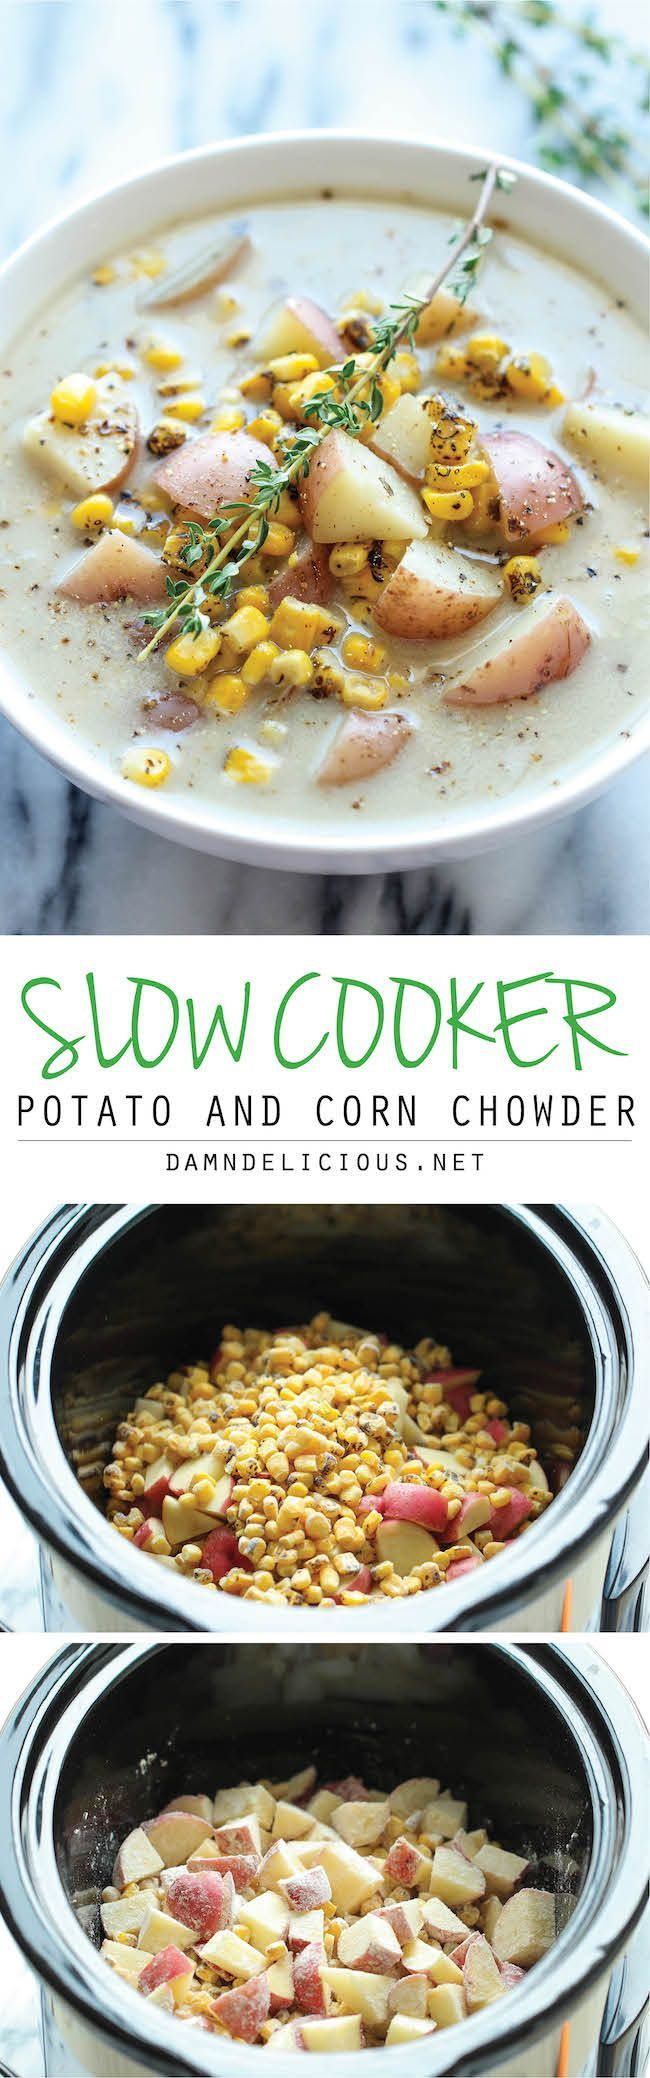 http://www.echopaul.com/  Slow Cooker Potato and Corn Chowder - The easiest chowder you will ever make. Throw everything in the crockpot and you're set!